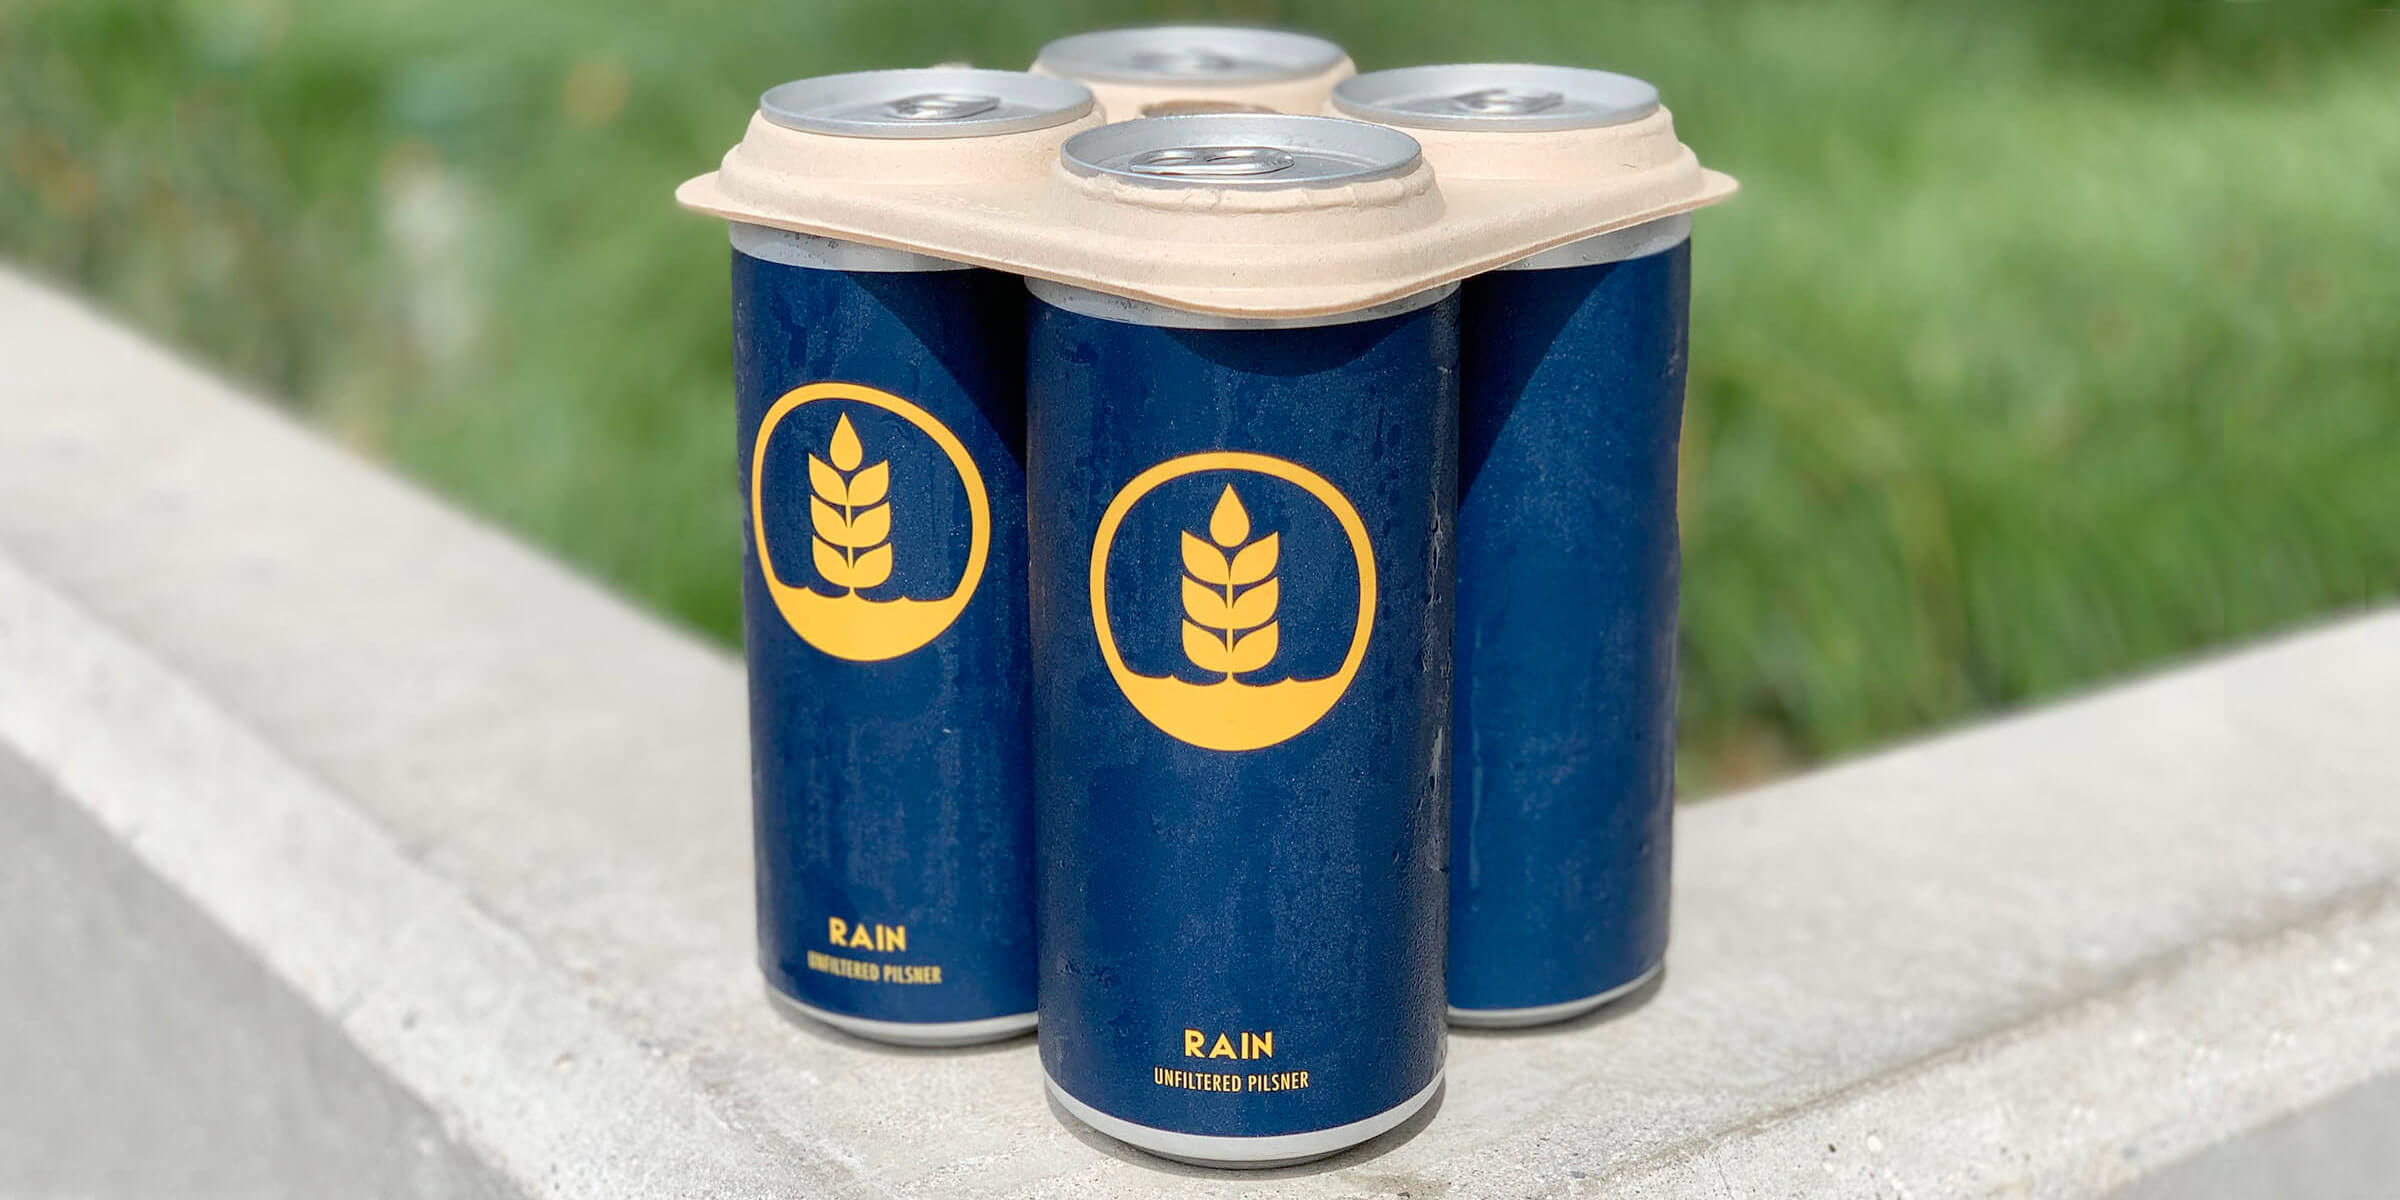 Pure Project received local and national press by becoming one of the first breweries in California to implement the ocean safe can holders from E6pr, the first biodegradable and compostable holder of its kind.